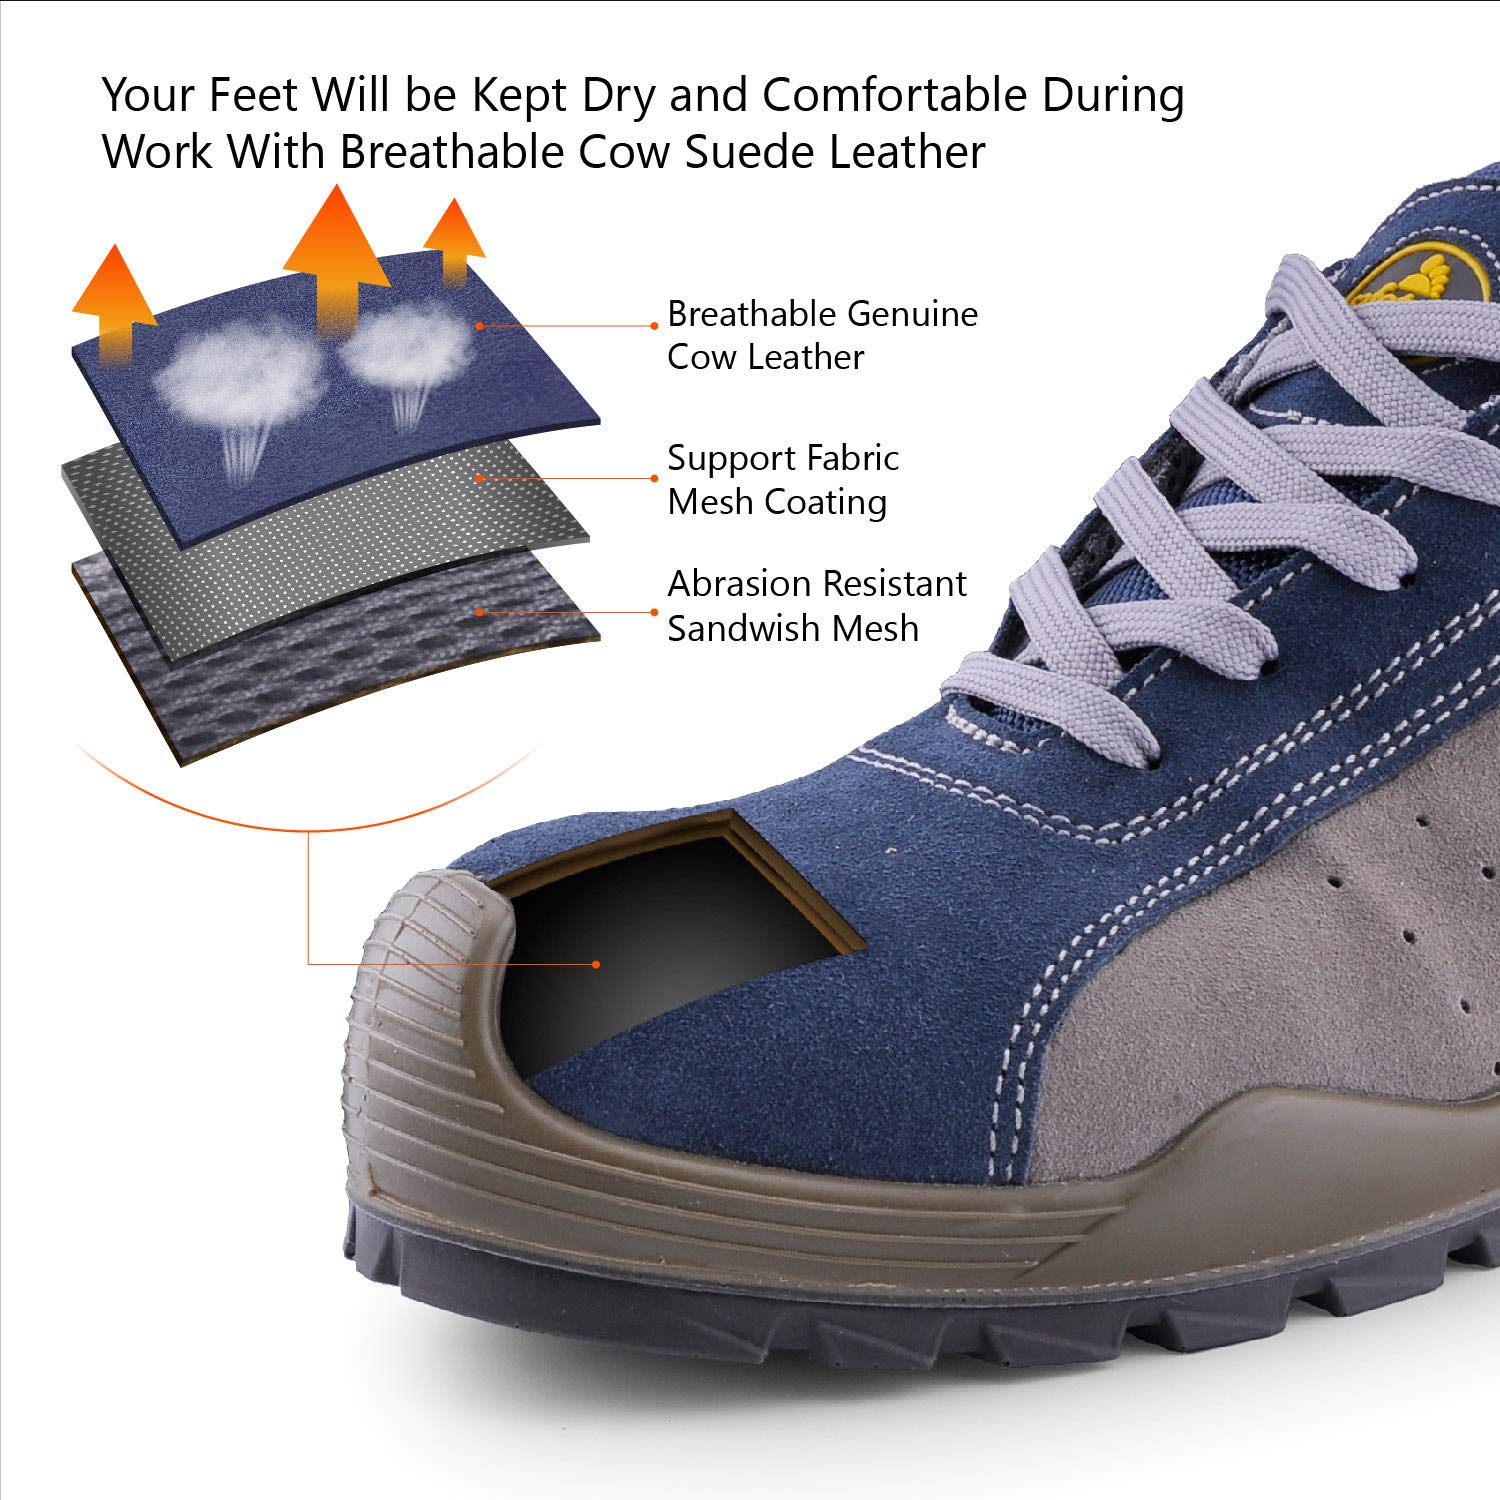 e61c5da7fd6c SAFETOE Breathable Leather Safety Shoes  CE Certified  - 7295 Lightweight  Safety Trainers with 4E Wide Fit Steel Toe Cap